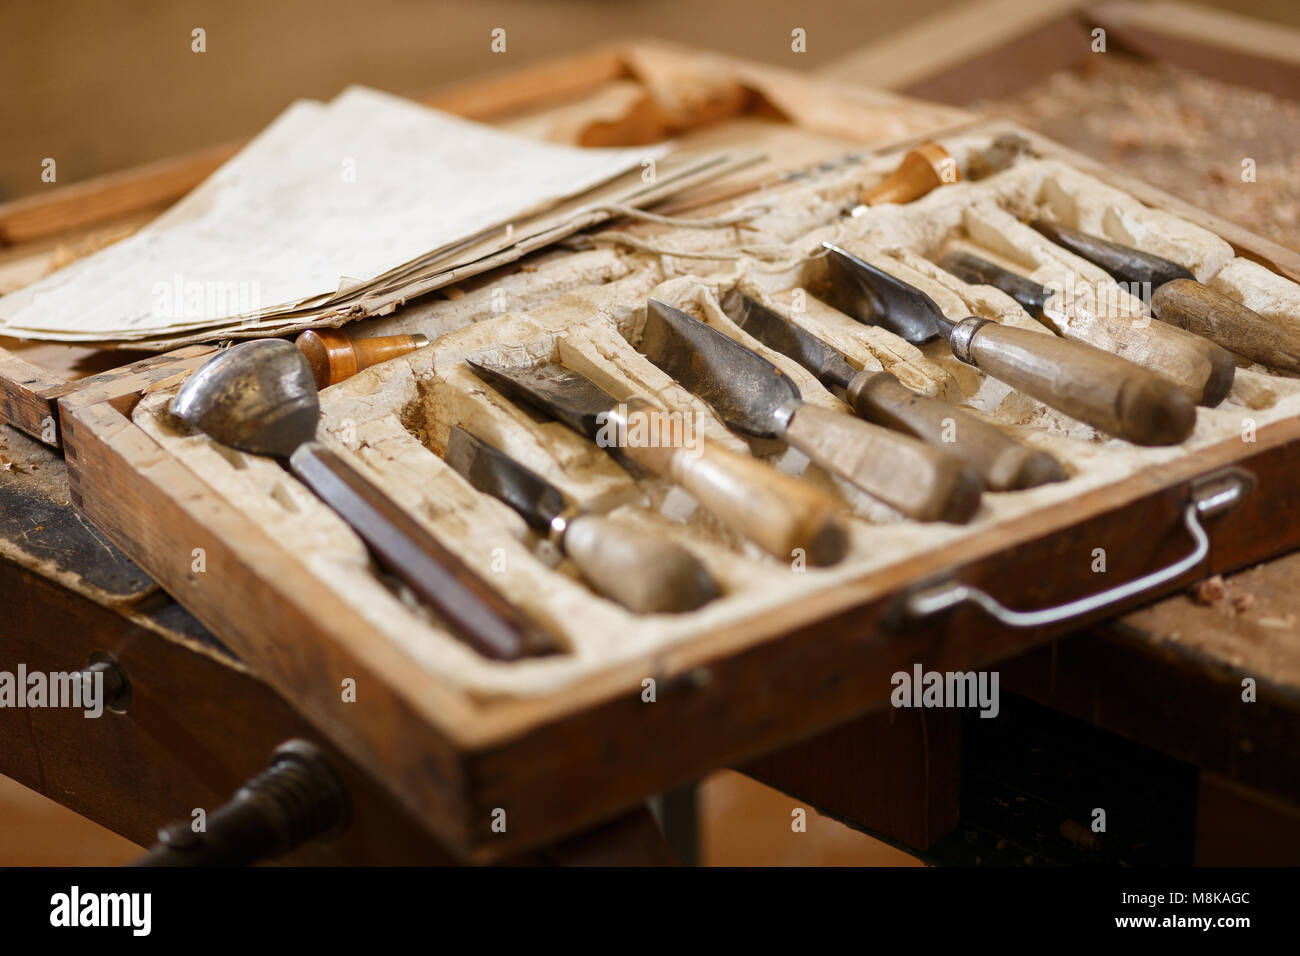 Set of carpenters tools in workshop. Crafting table with instrument - Stock Image